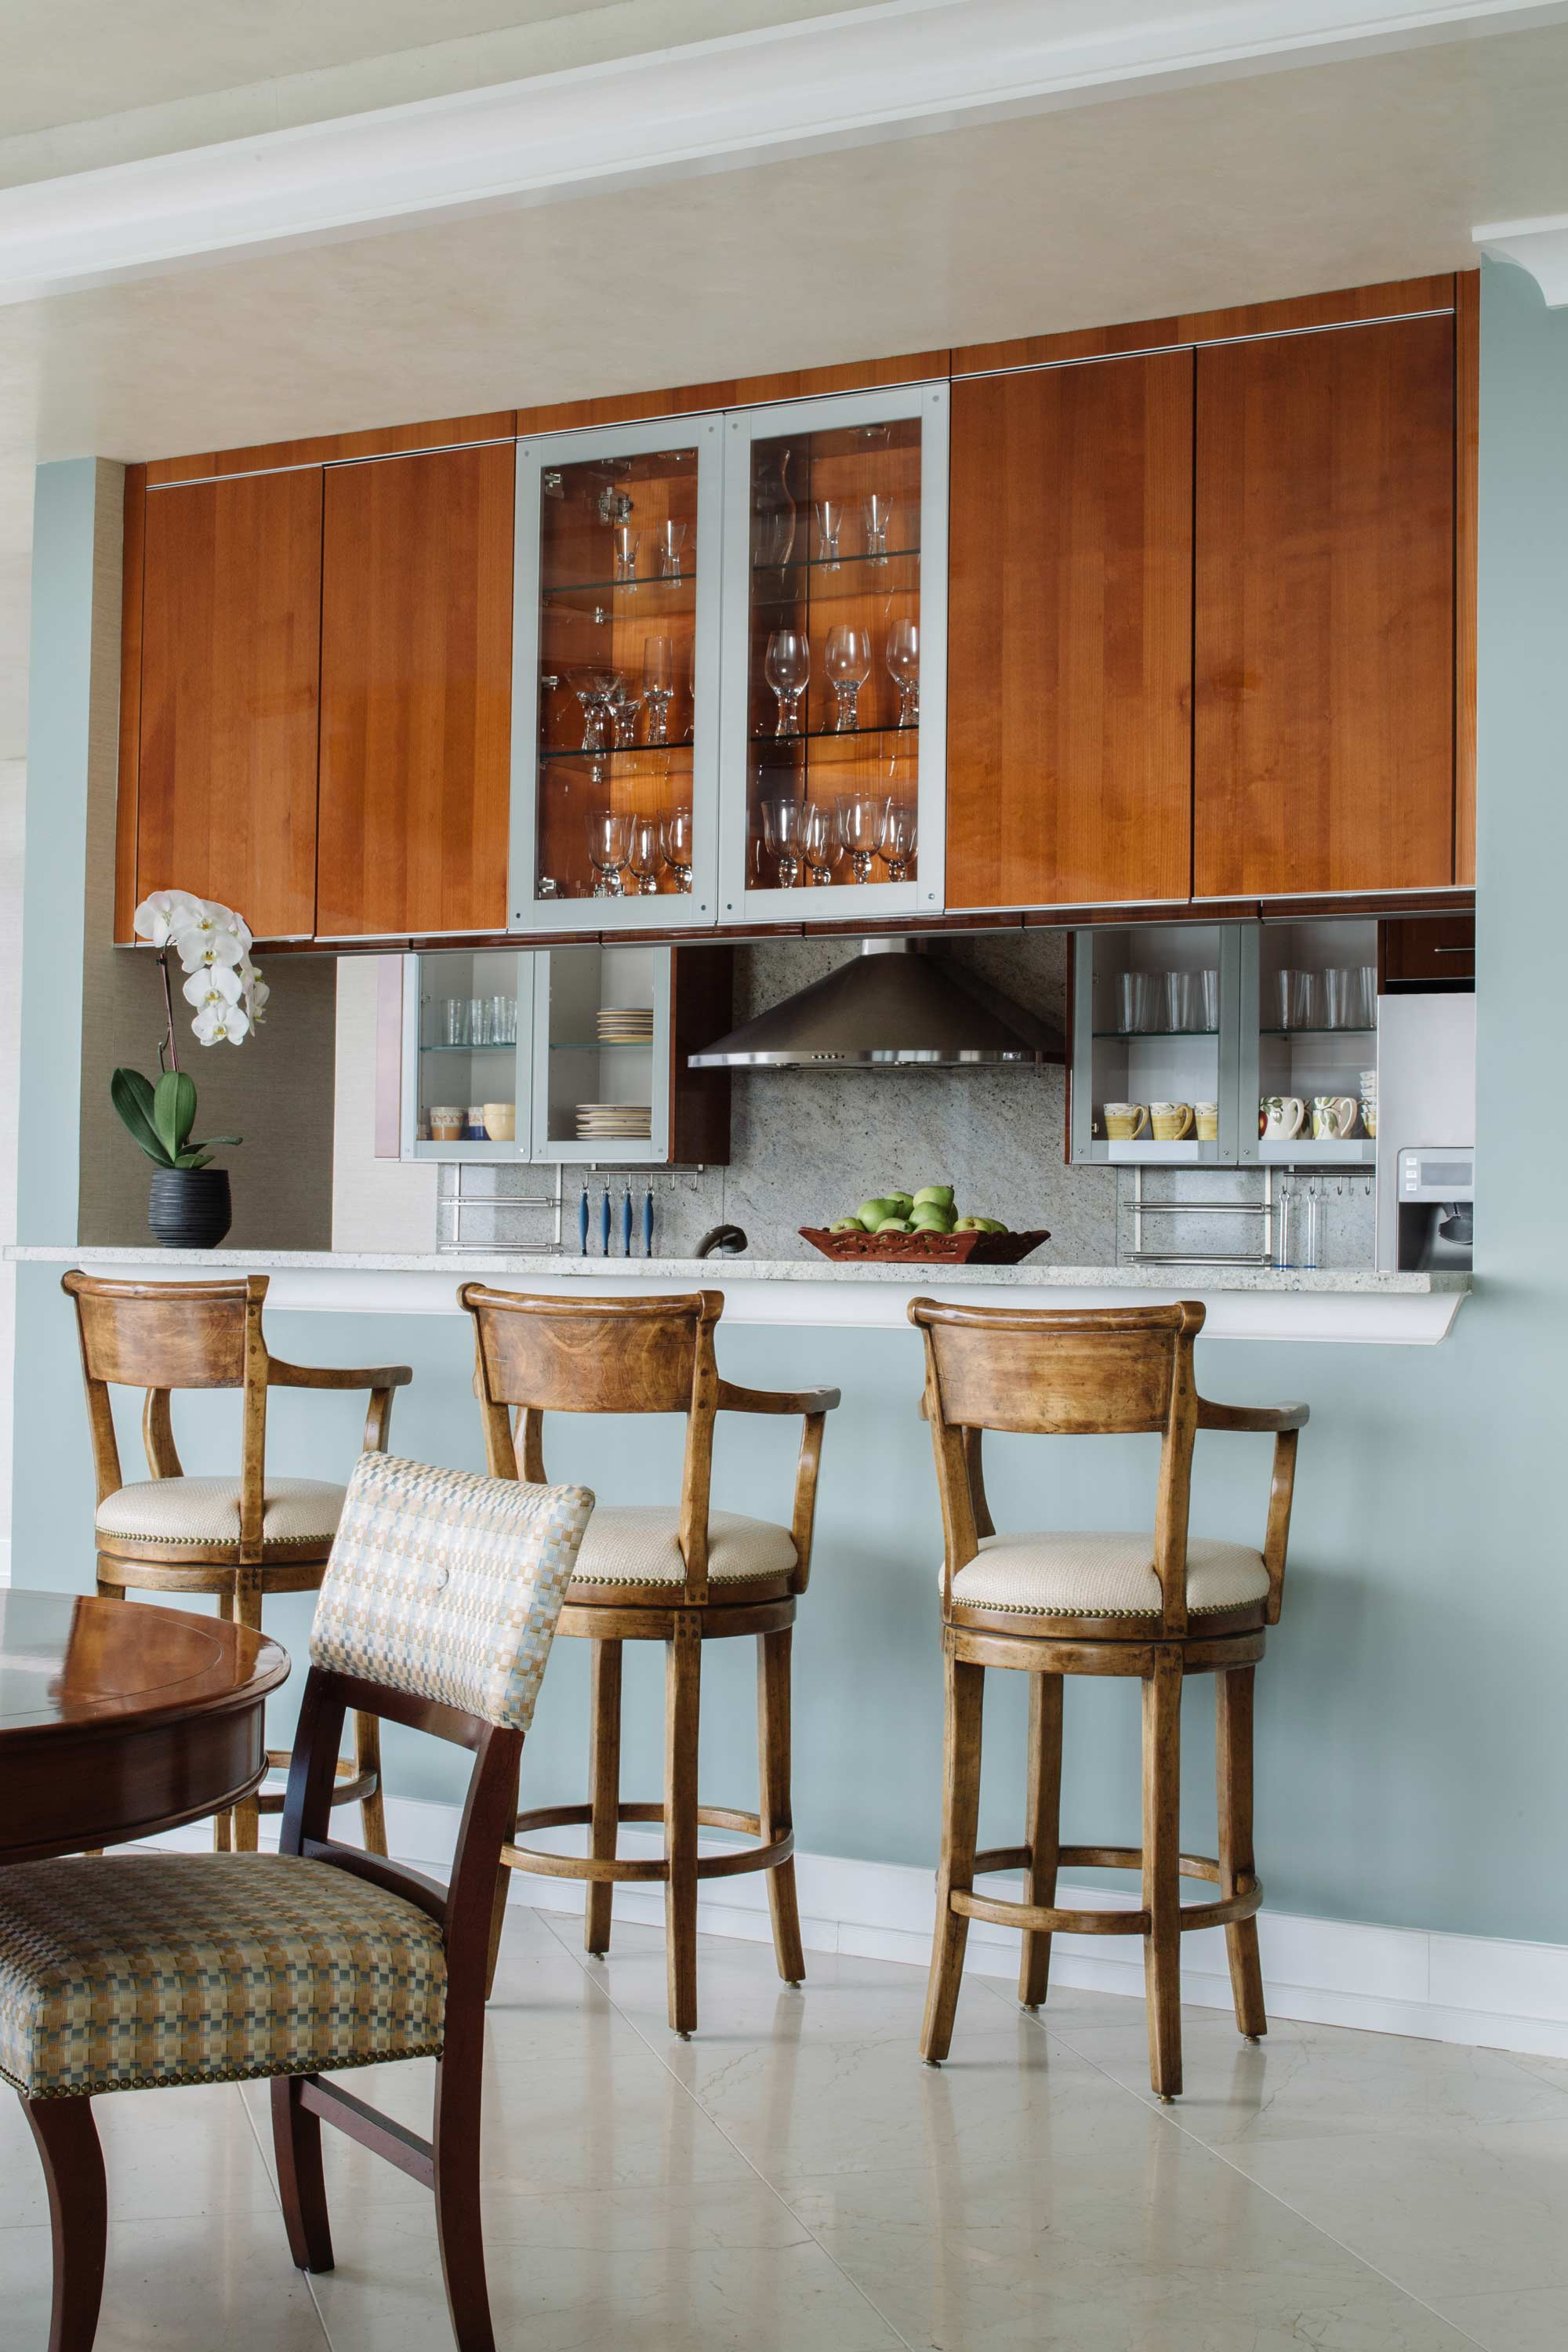 Victoria+Sanchez+Washington+kitchen+Design.jpg